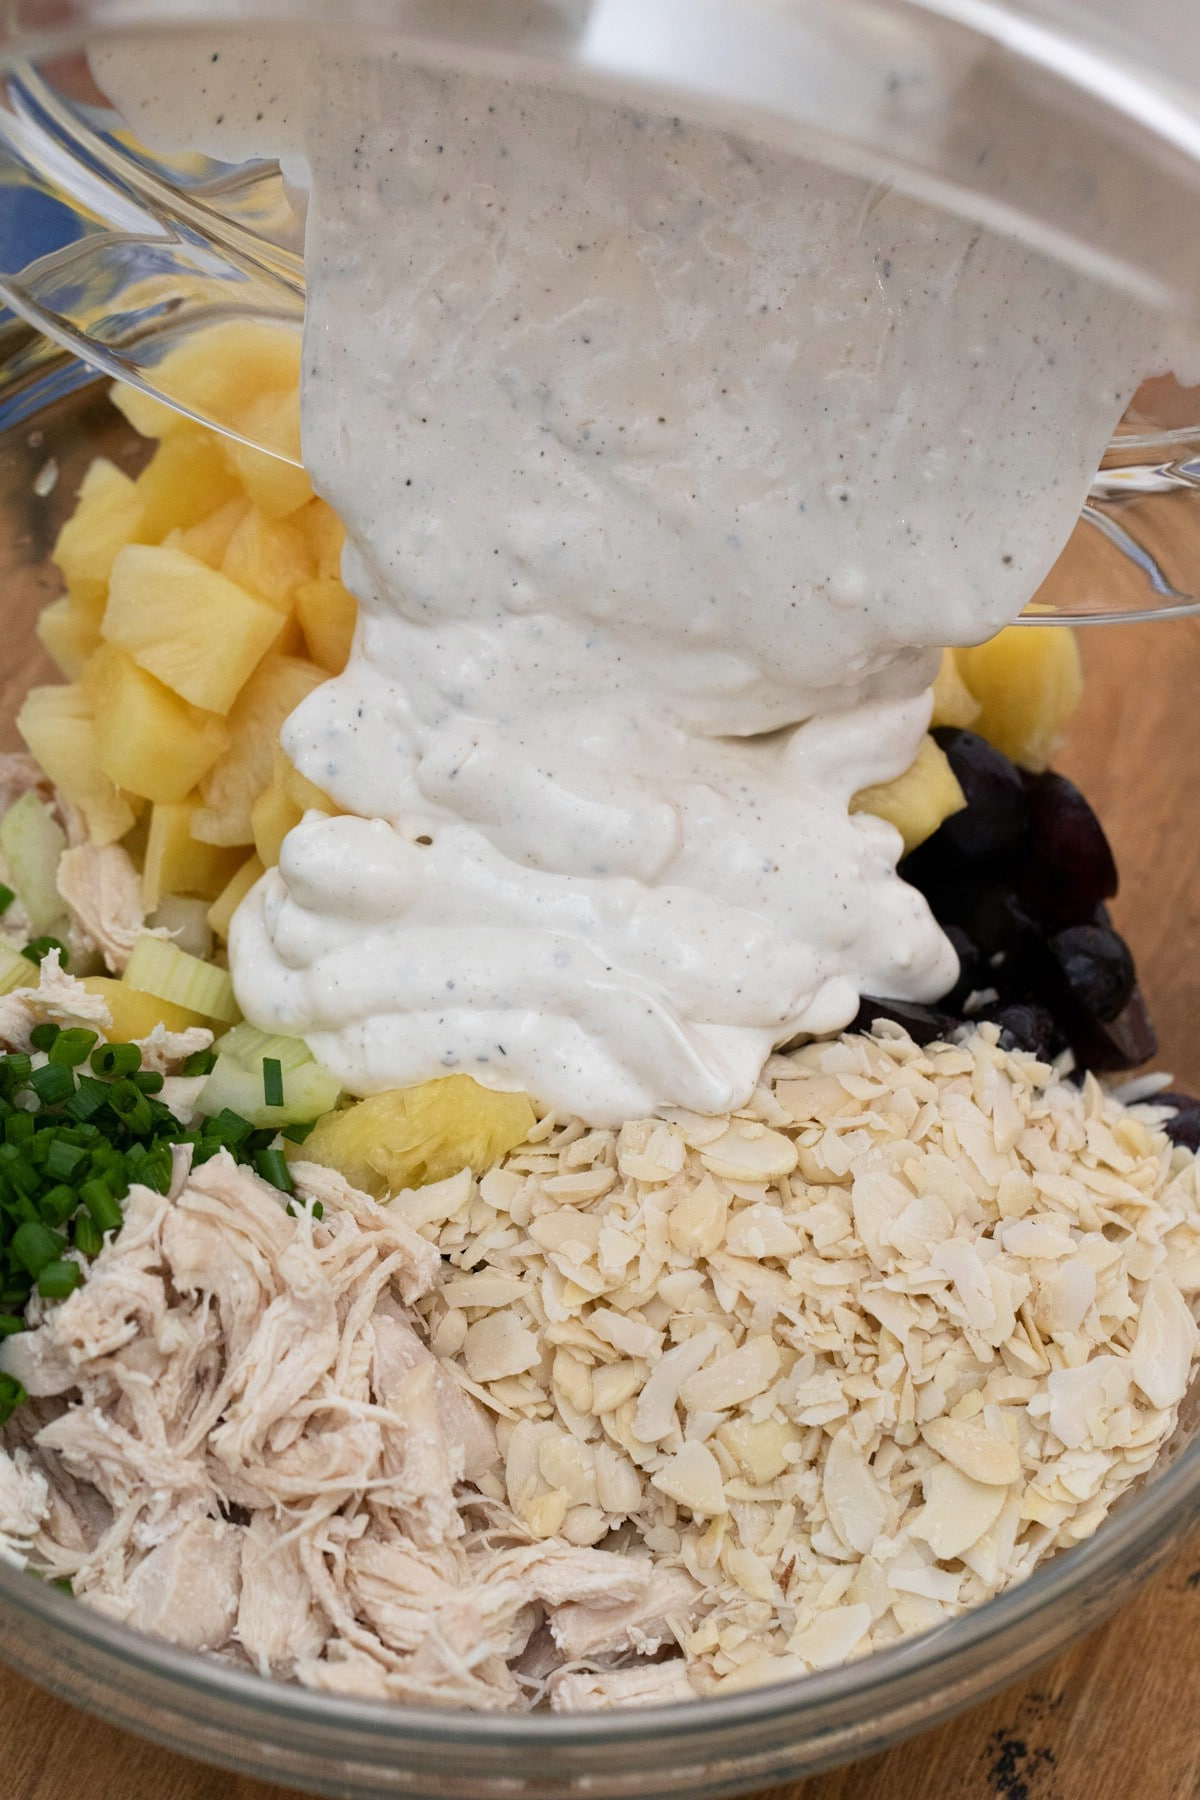 Pouring dressing over bowl of chicken and fruit